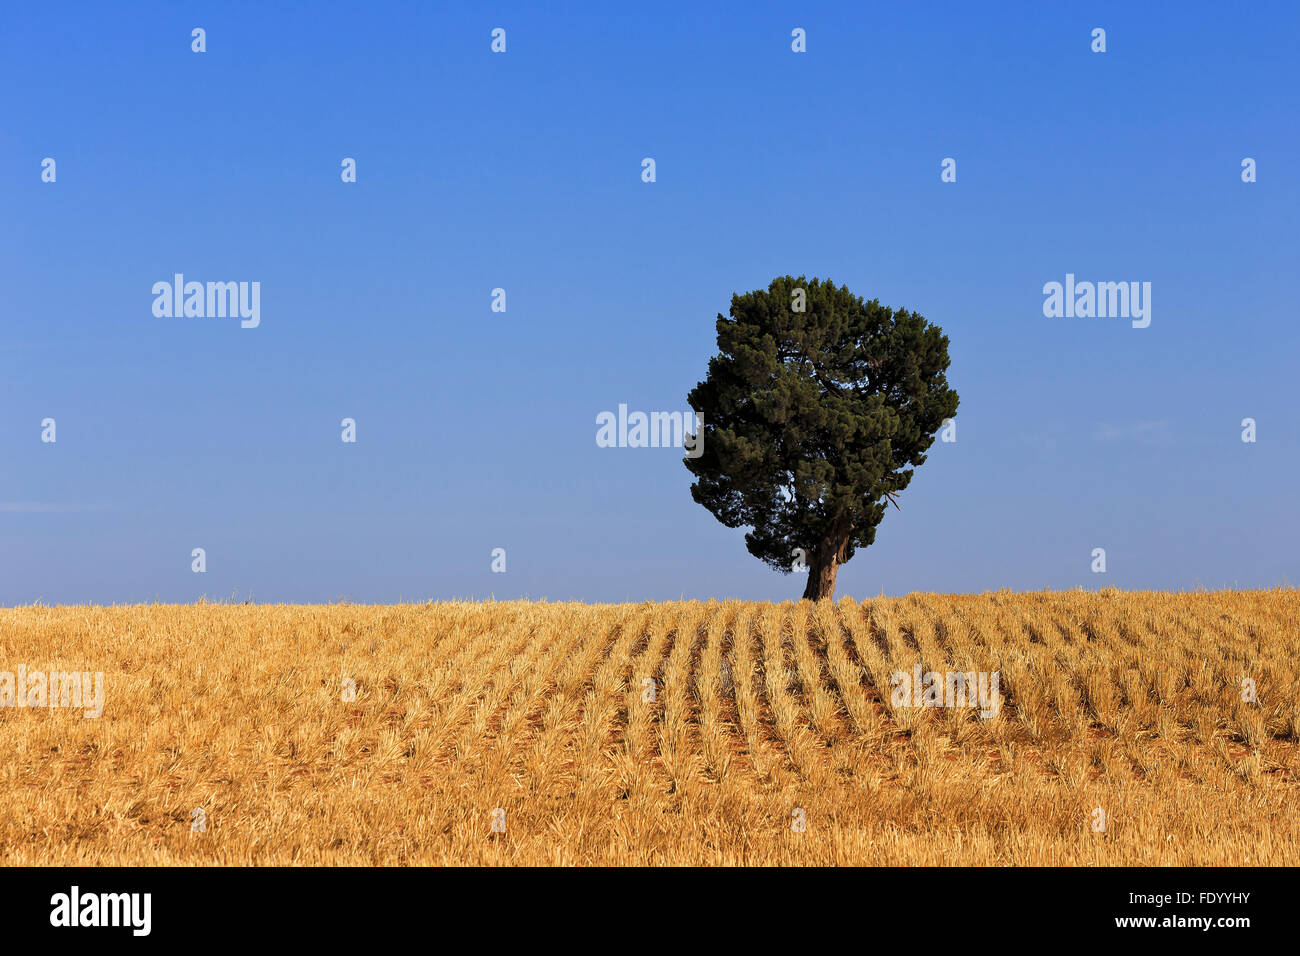 yellow wheat field after harvested crop with lonely tree on a horizon agaist clear blue sky - Stock Image